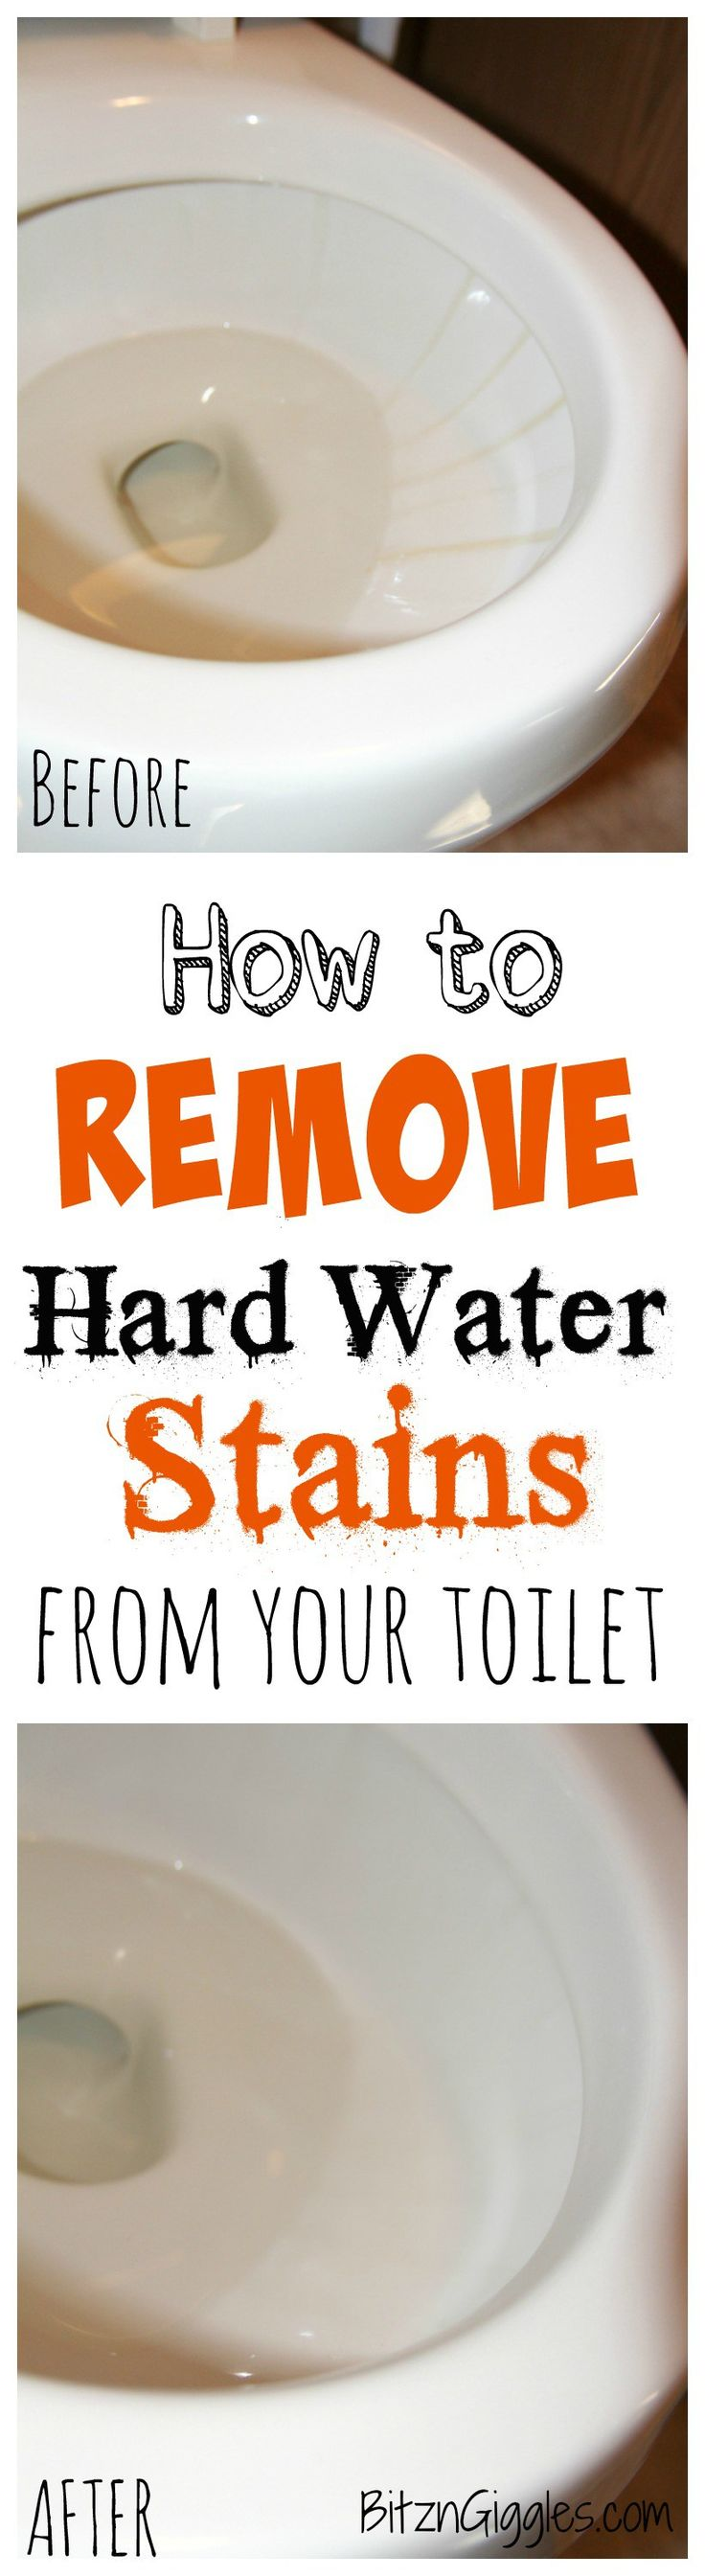 how to clean stains out of toilet